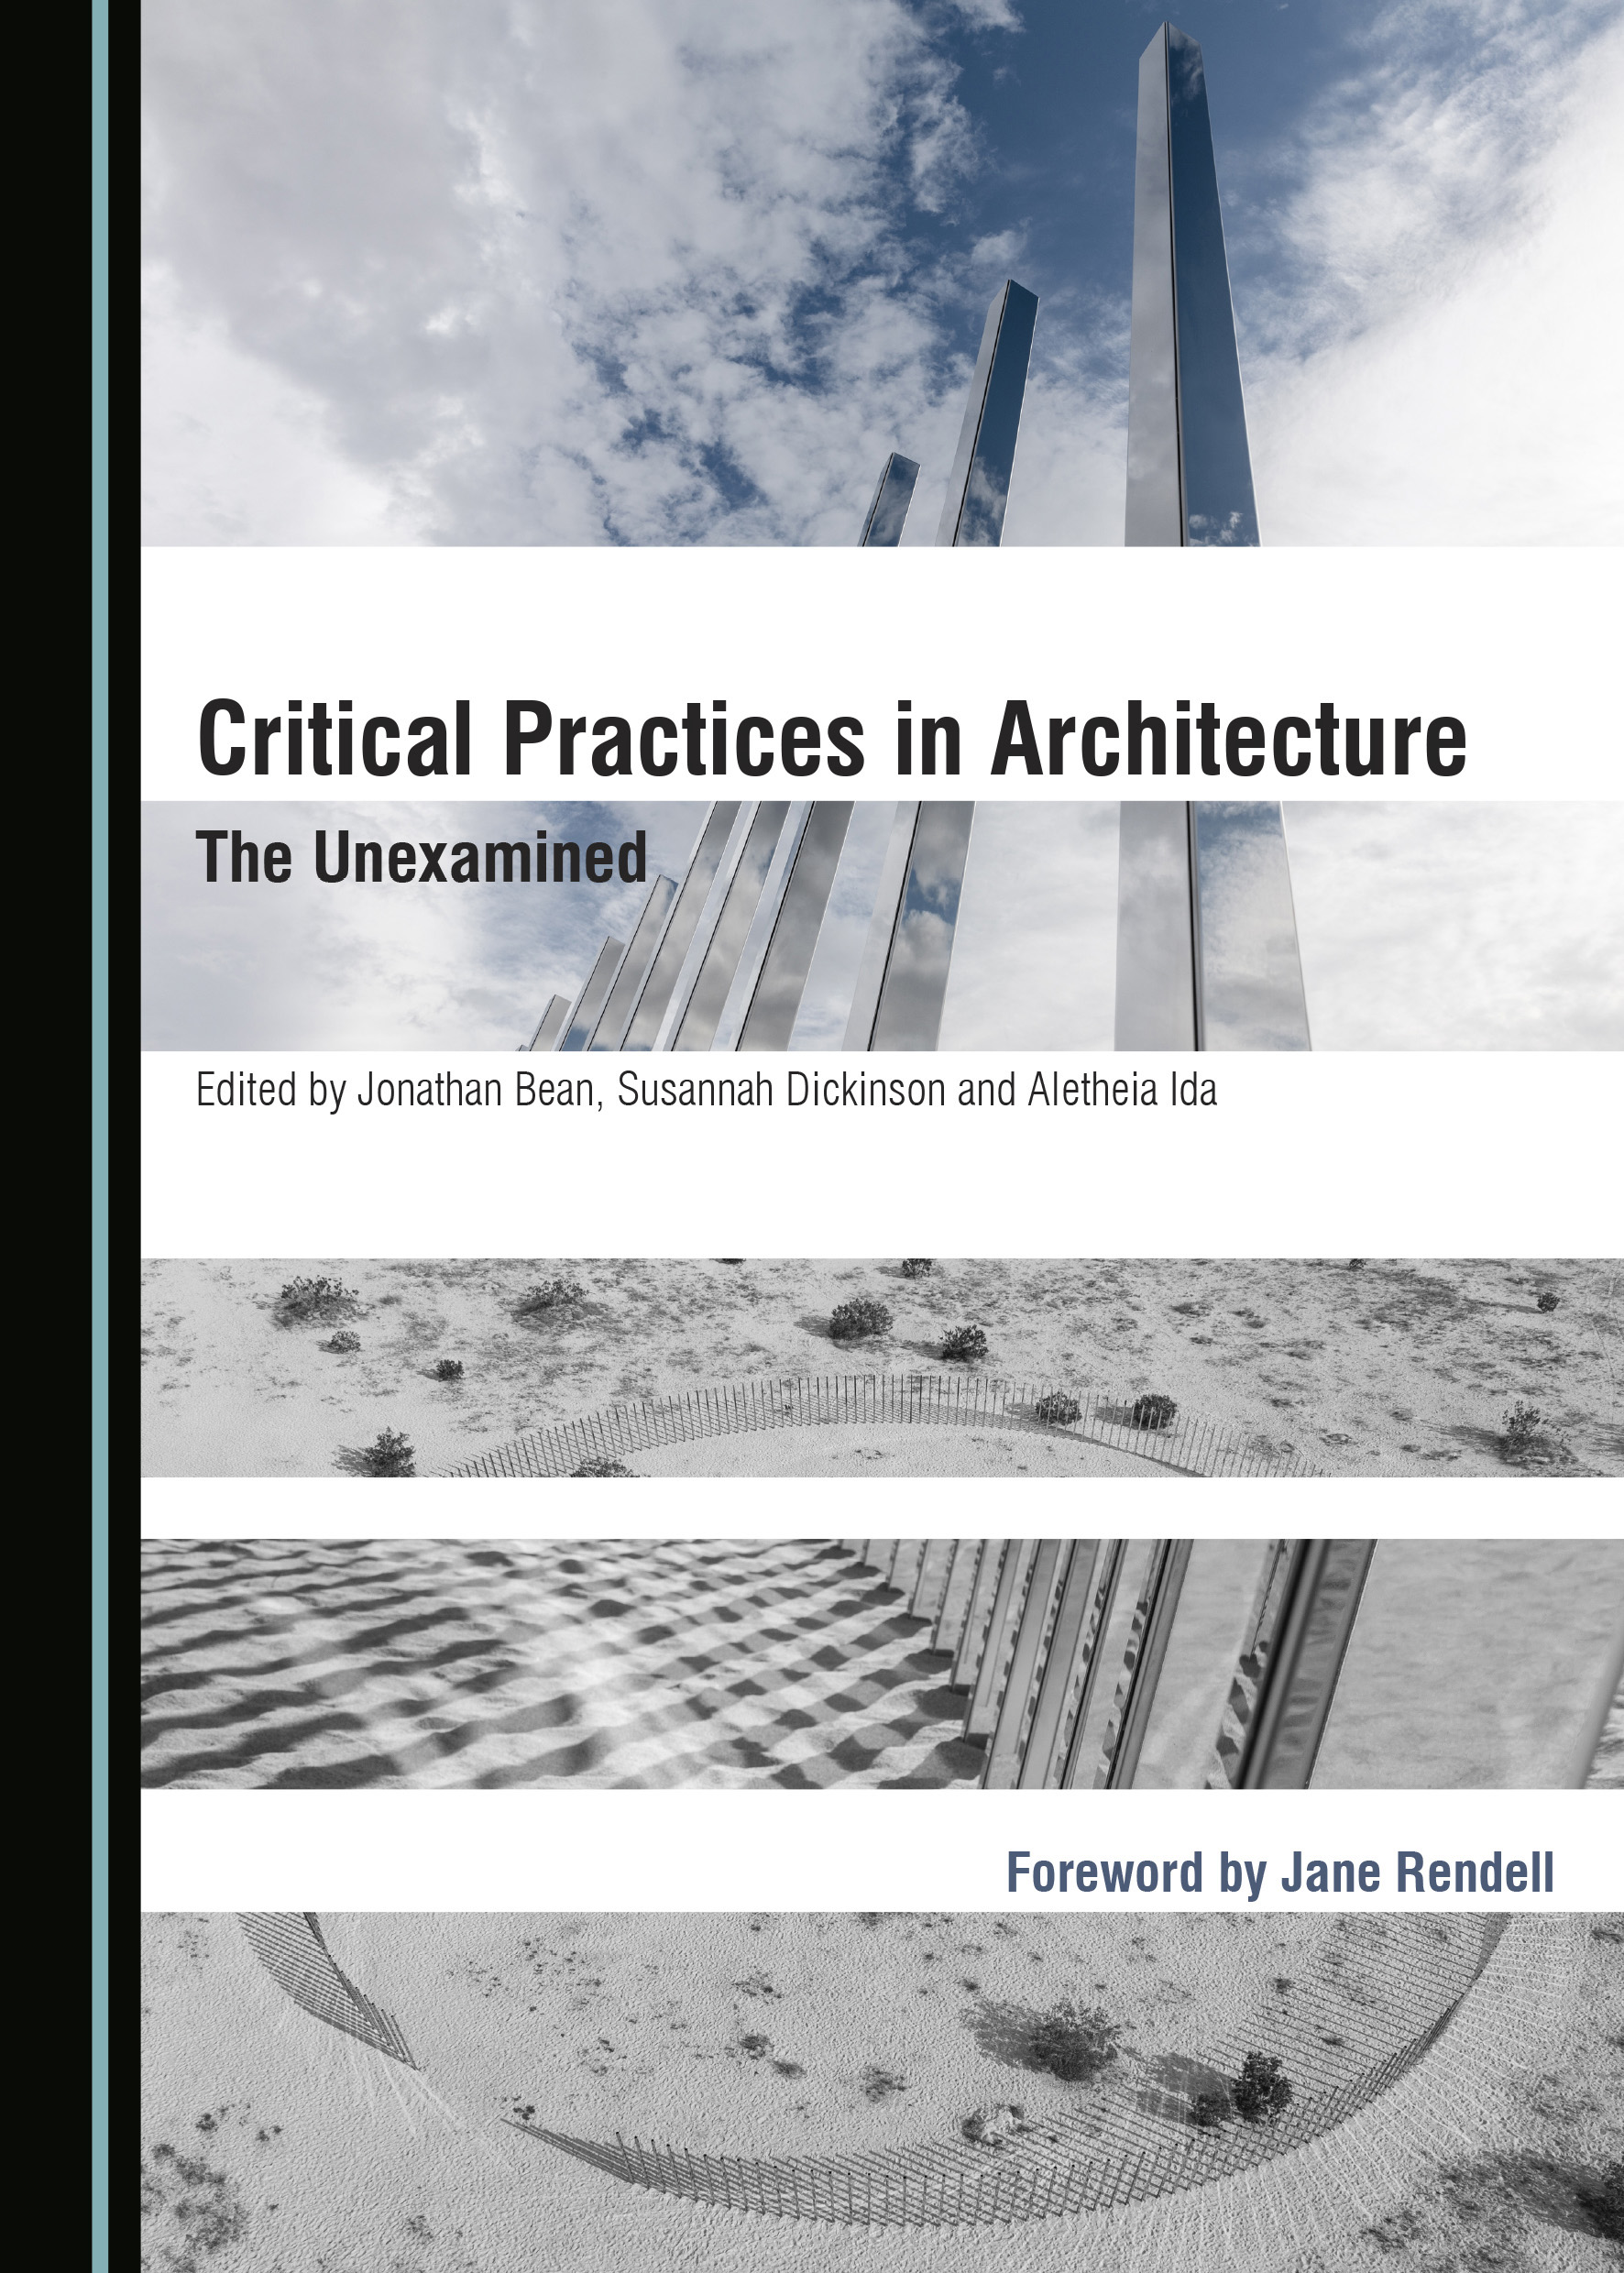 Critical Practices in Architecture: The Unexamined